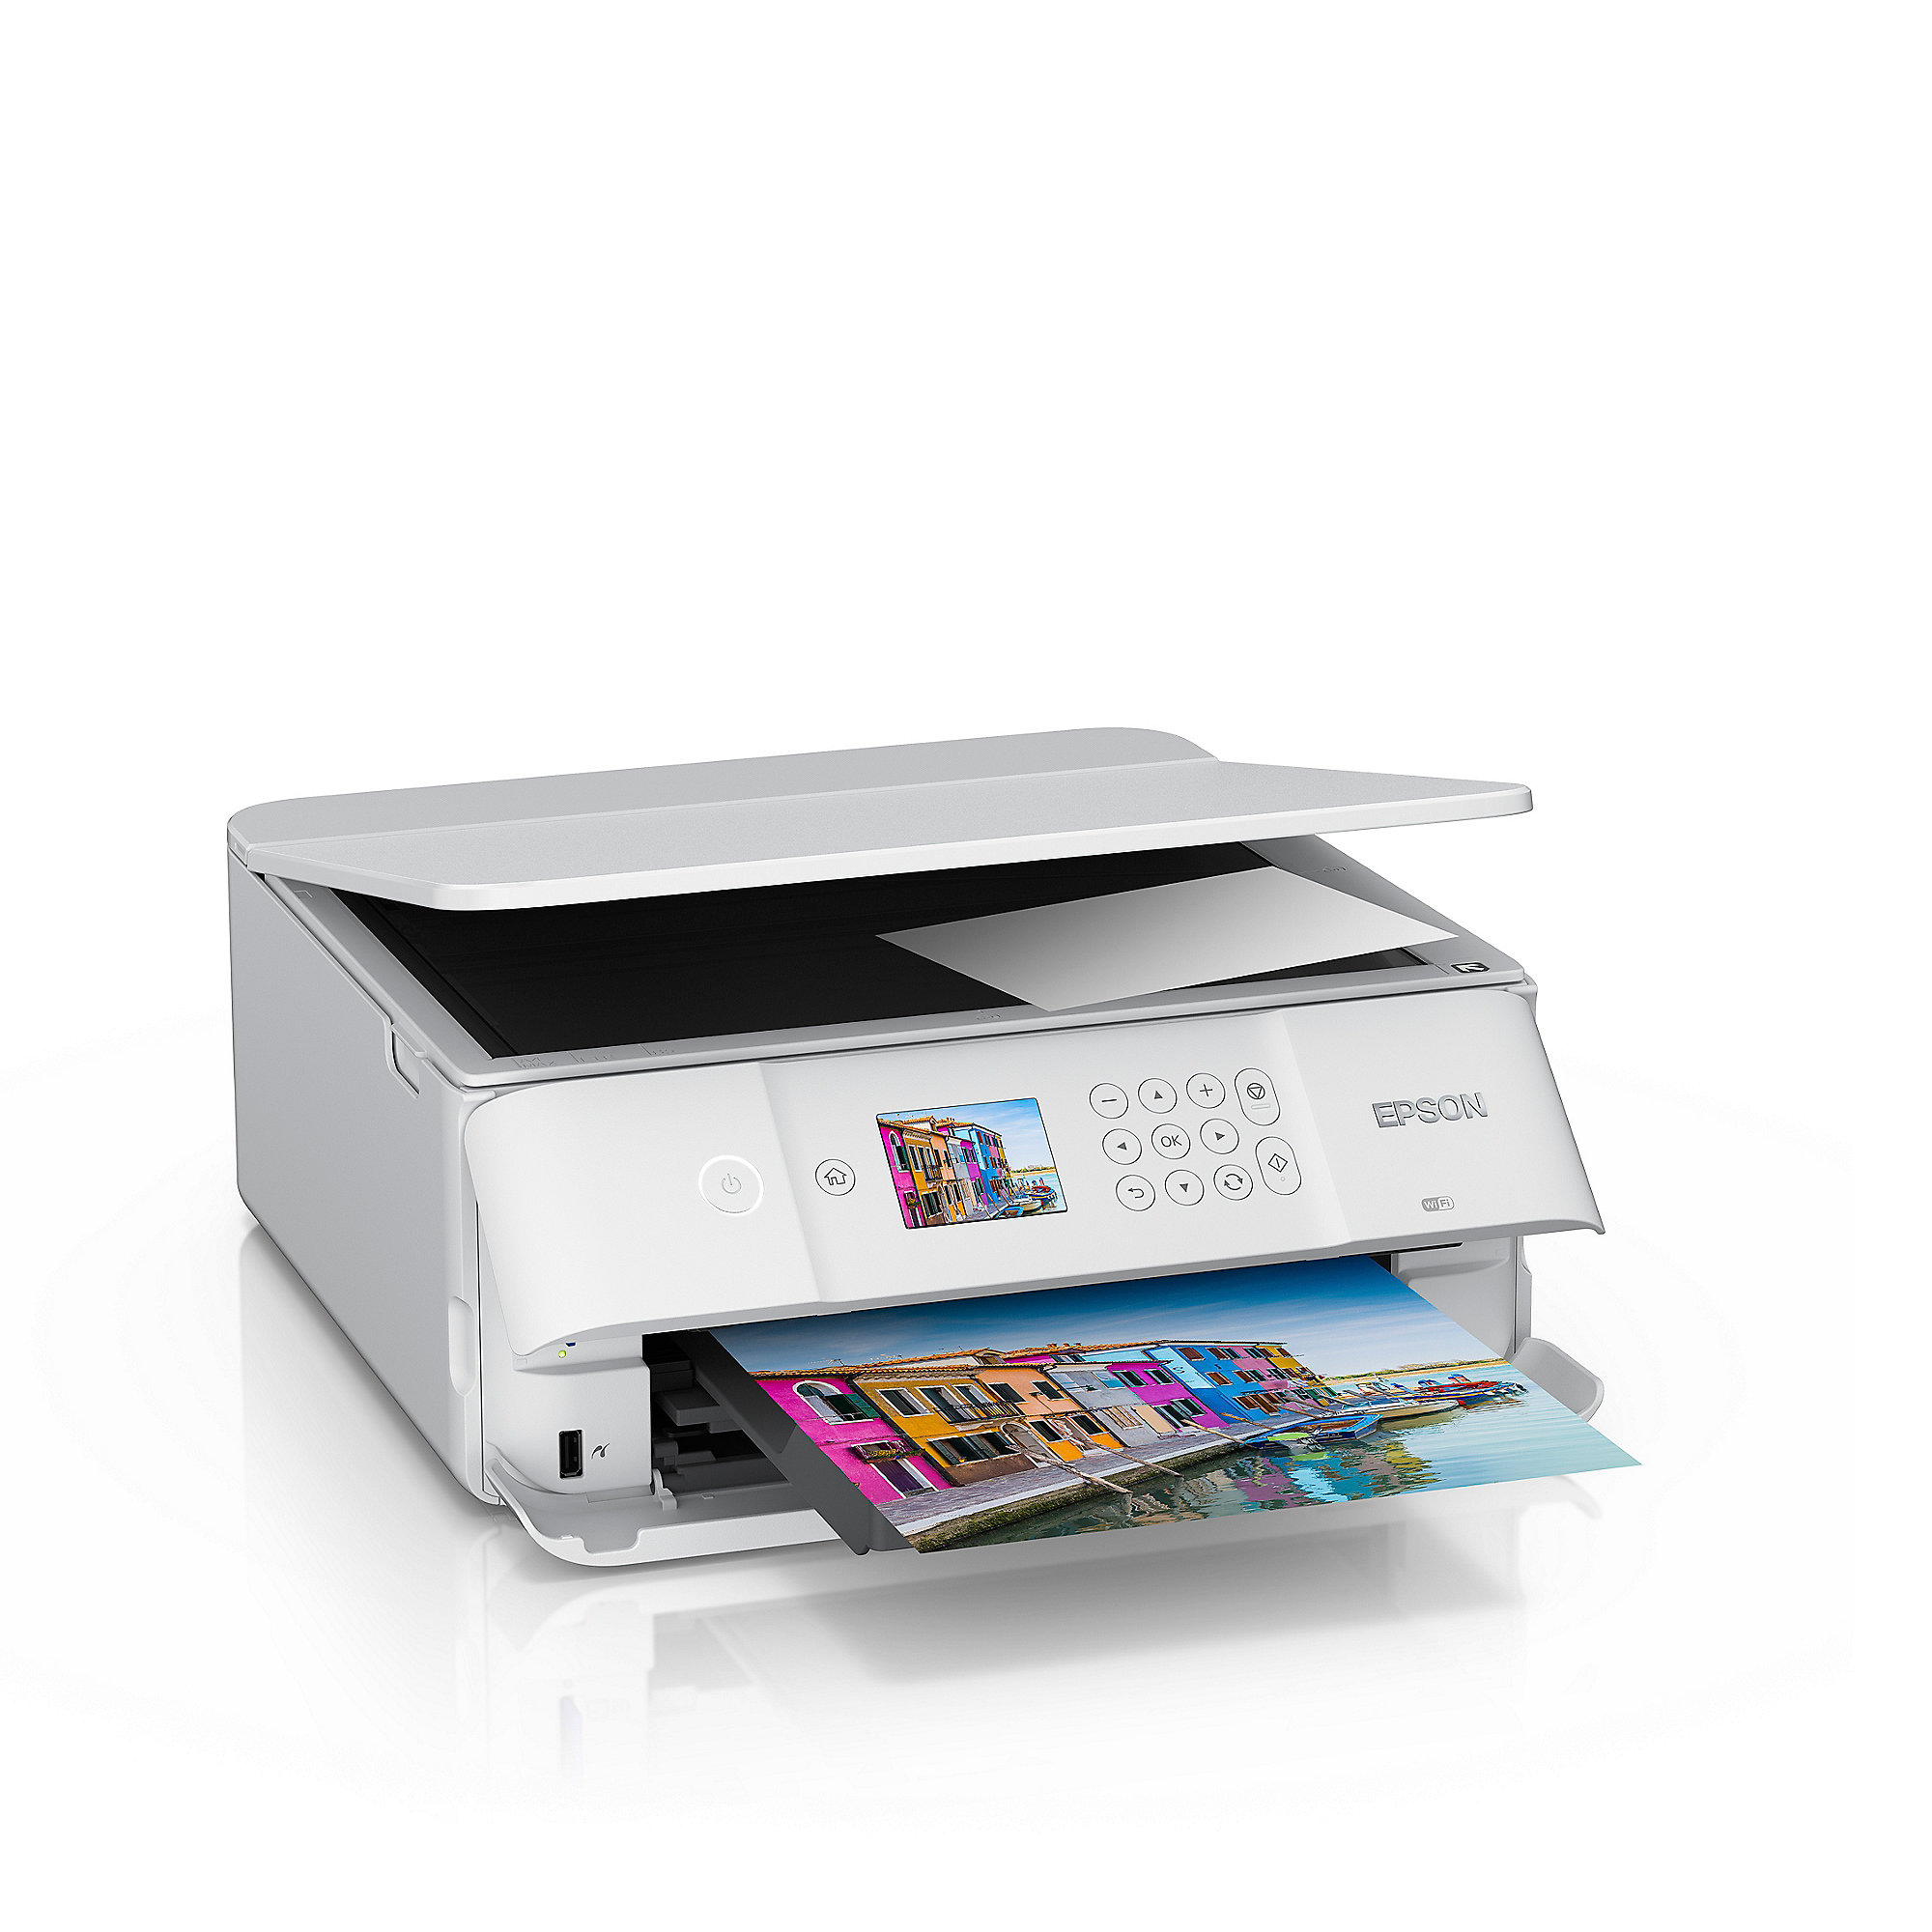 EPSON Expression Premium XP-6005 Multifunktionsdrucker Scanner Kopierer WLAN